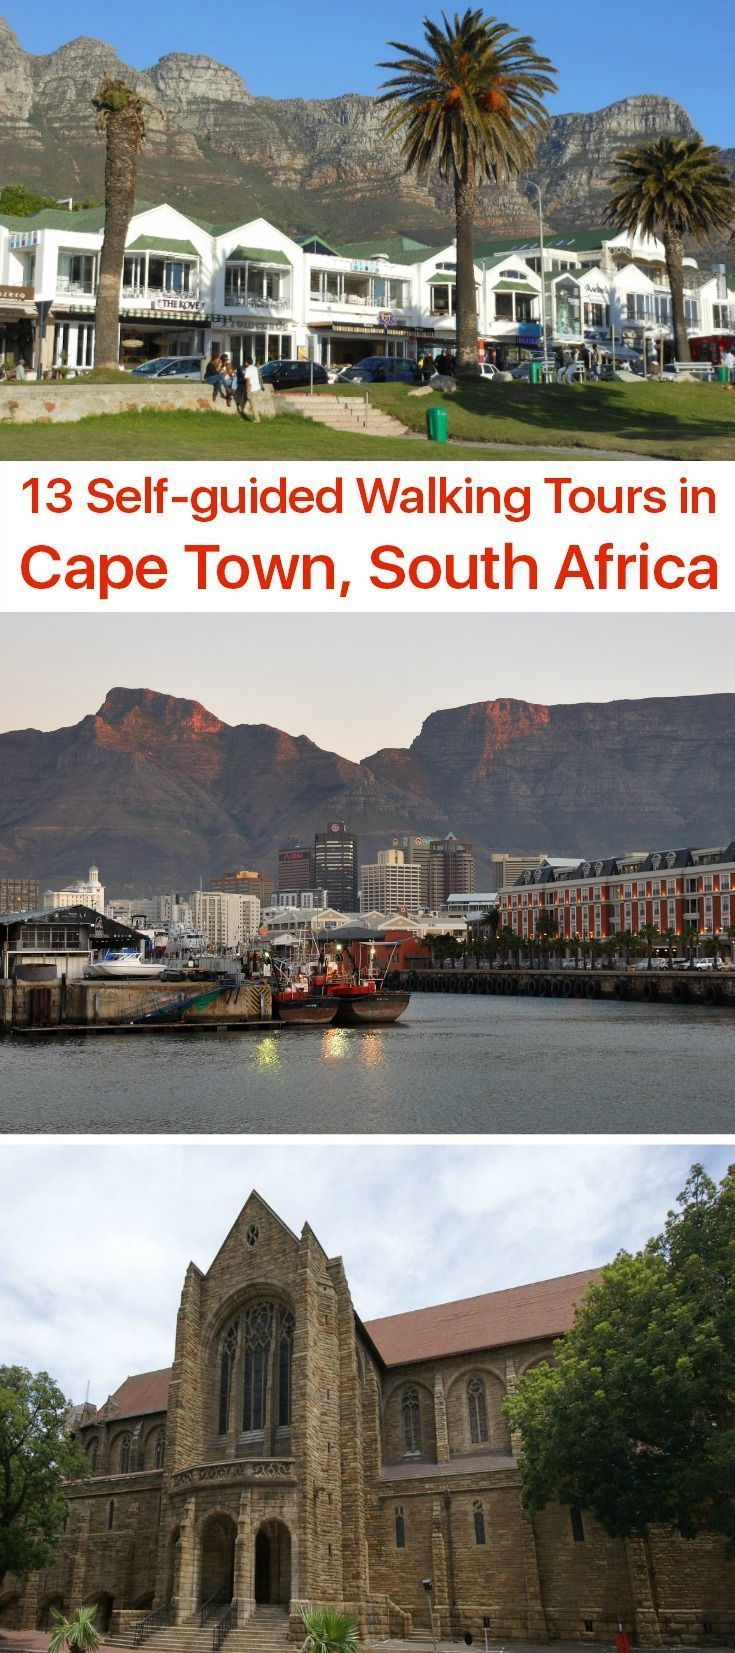 The city of Cape Town and the Cape of Good Hope are perhaps the two most prominent tourist destinations on the most south-western tip of Africa. Set against the backdrop of the magnificent Table Mountain, the city overlooks the eponymous Table Bay with Robben Island where Nelson Mandela once served his prison sentence.